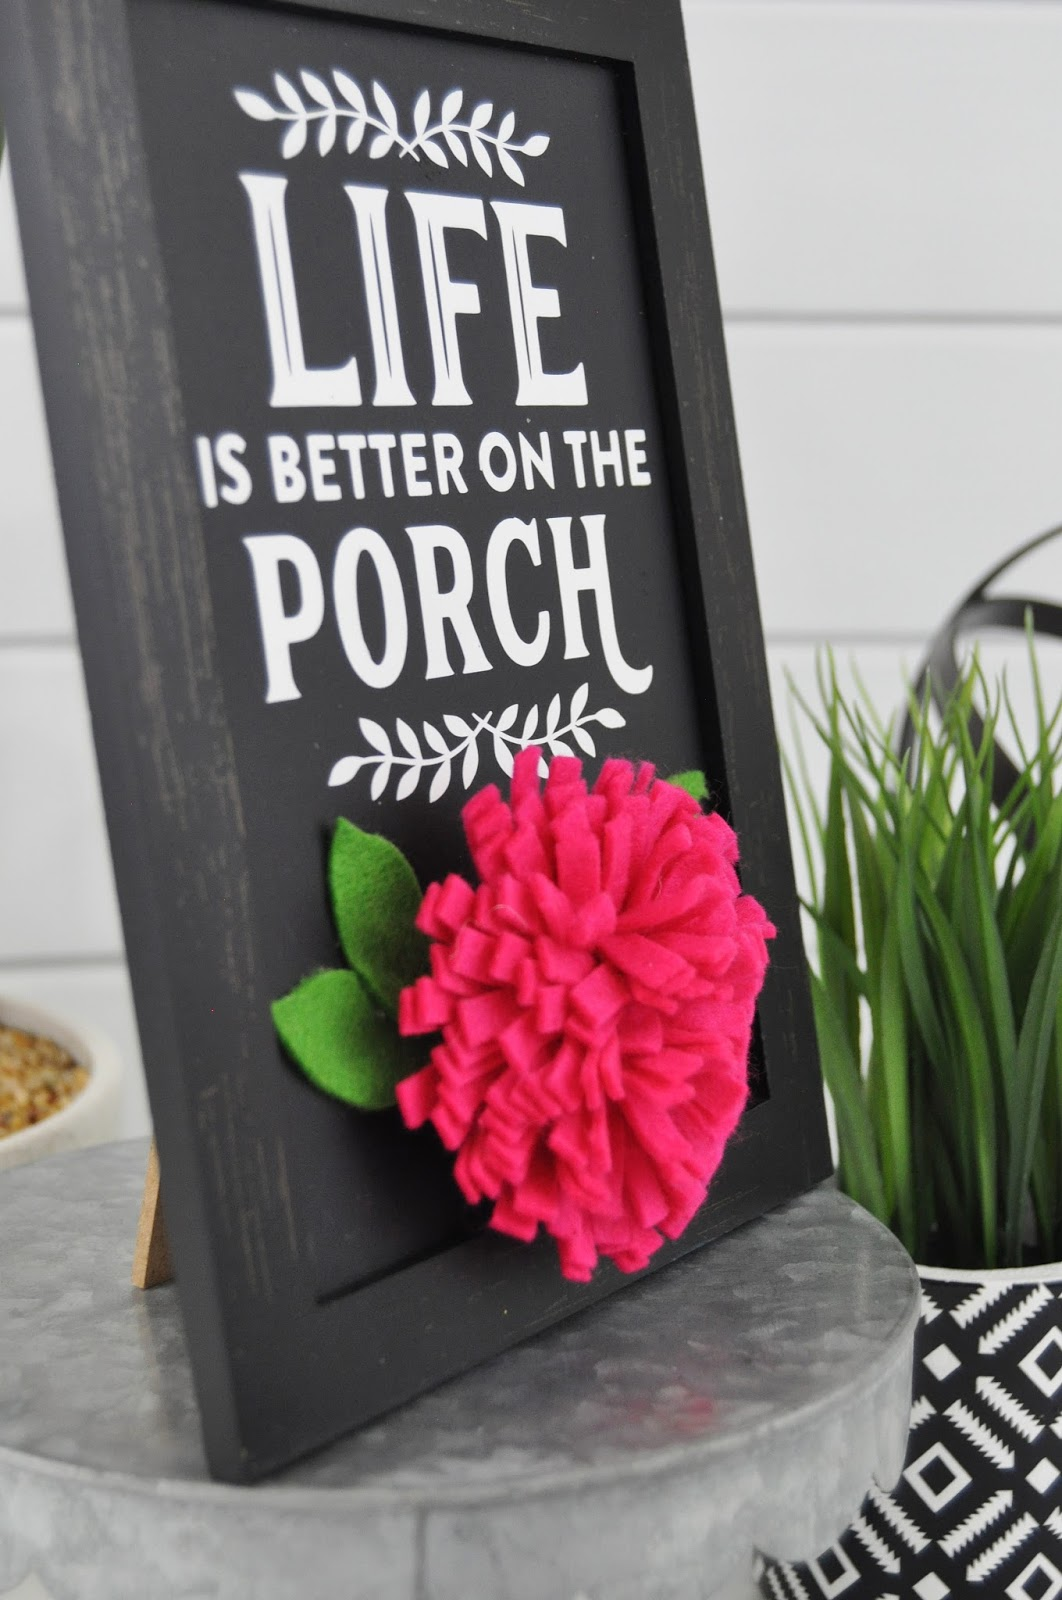 Porch chalkboard sign tutorial. Vinyl chalkboard porch sign. How to use vinyl to create a chalkboard sign for your porch with Jen Gallacher. #vinyl #chalkboard #jengallacher #jillibeansoup